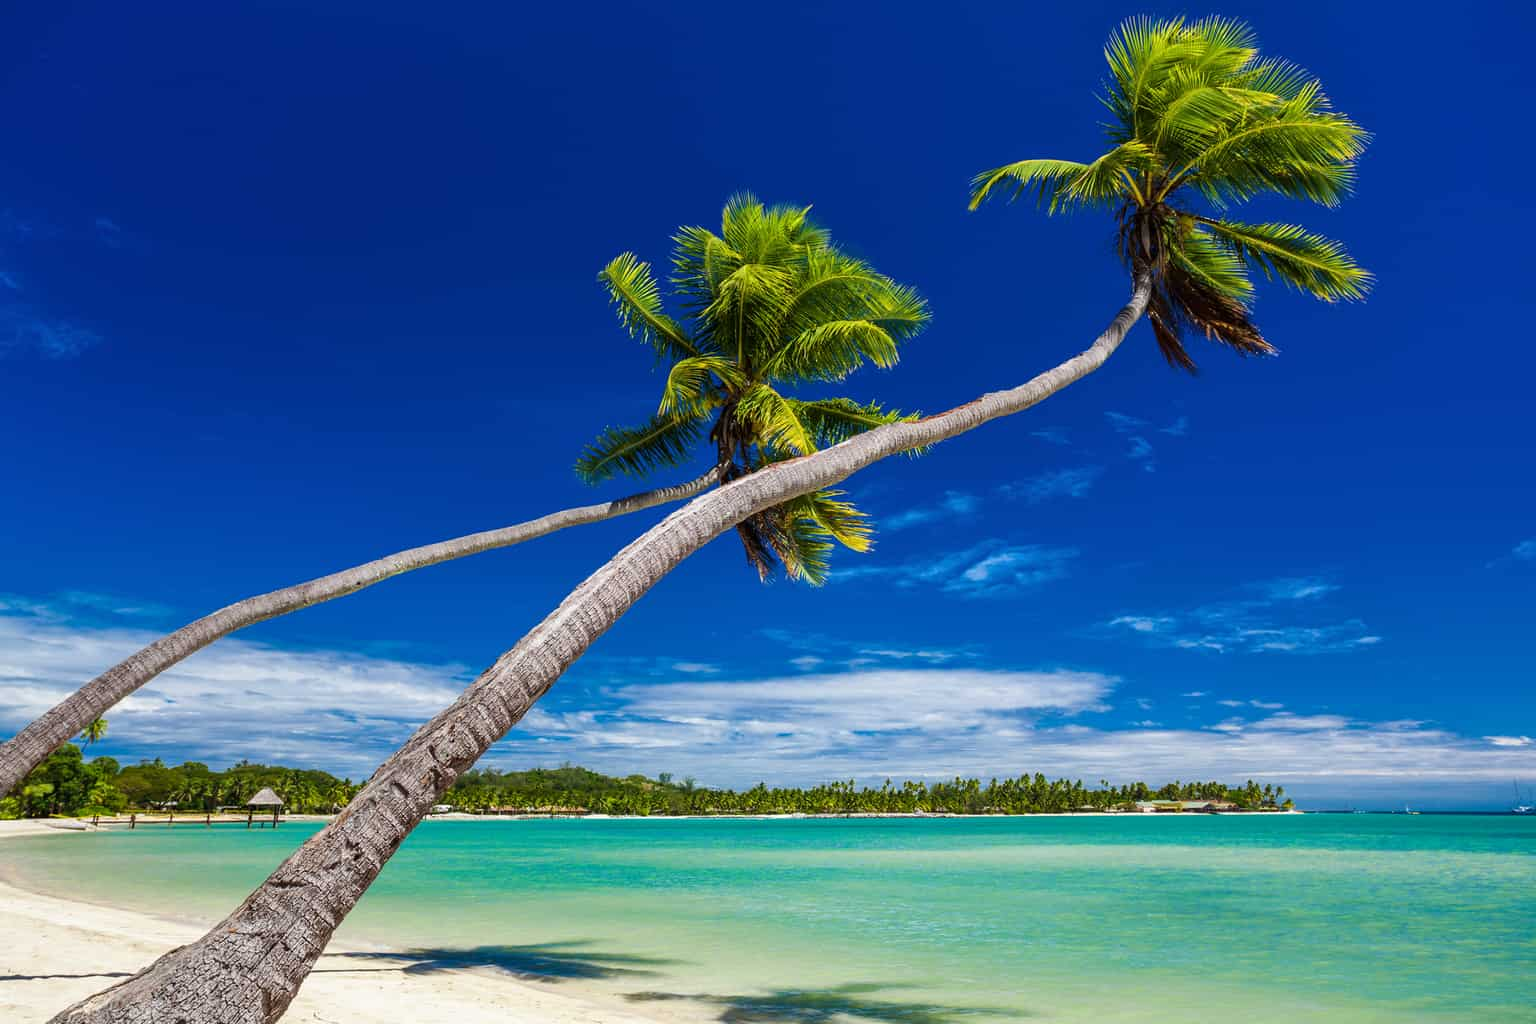 Palm trees on Fiji Islands